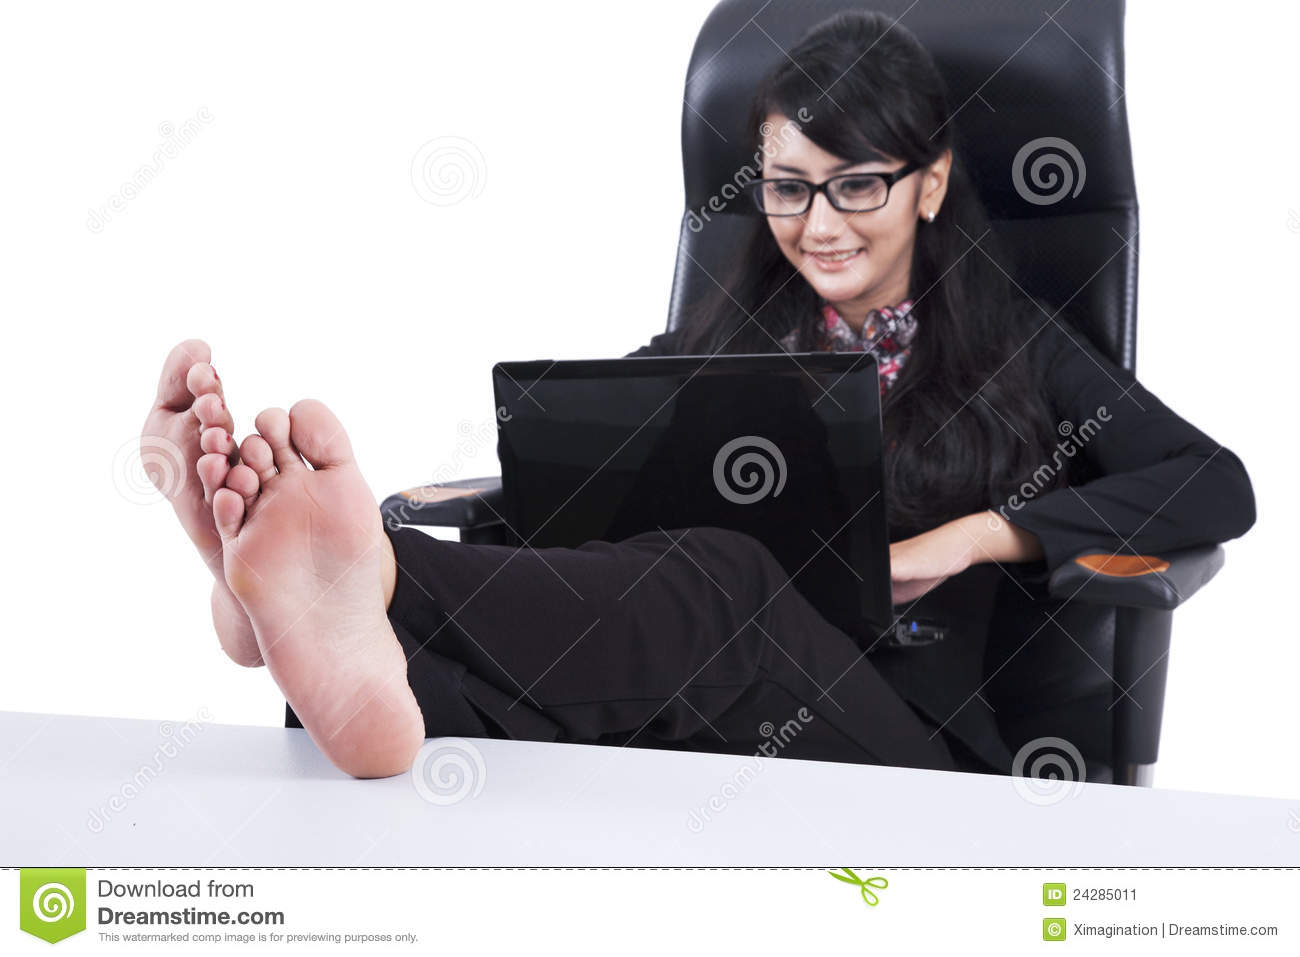 Businesswoman using laptop with Feet Up on a Table isolated on white.